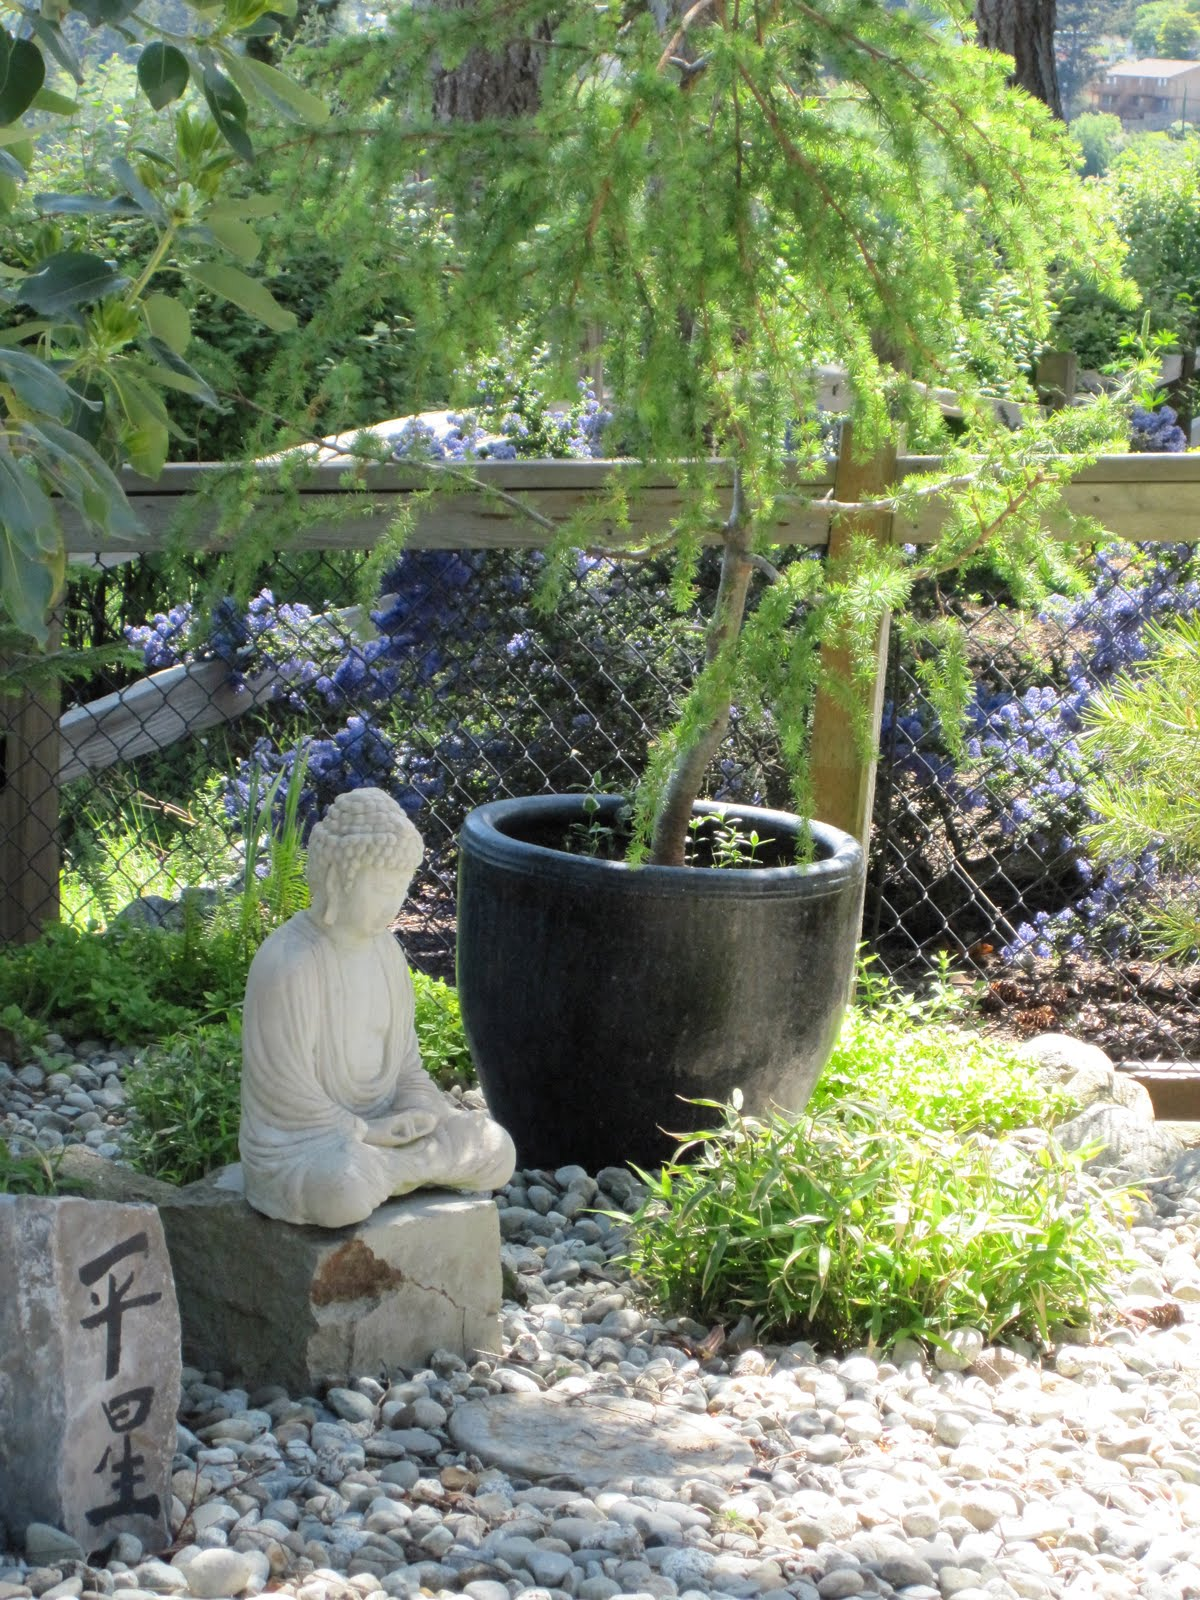 Layers: The Song Of The Zen Gardens